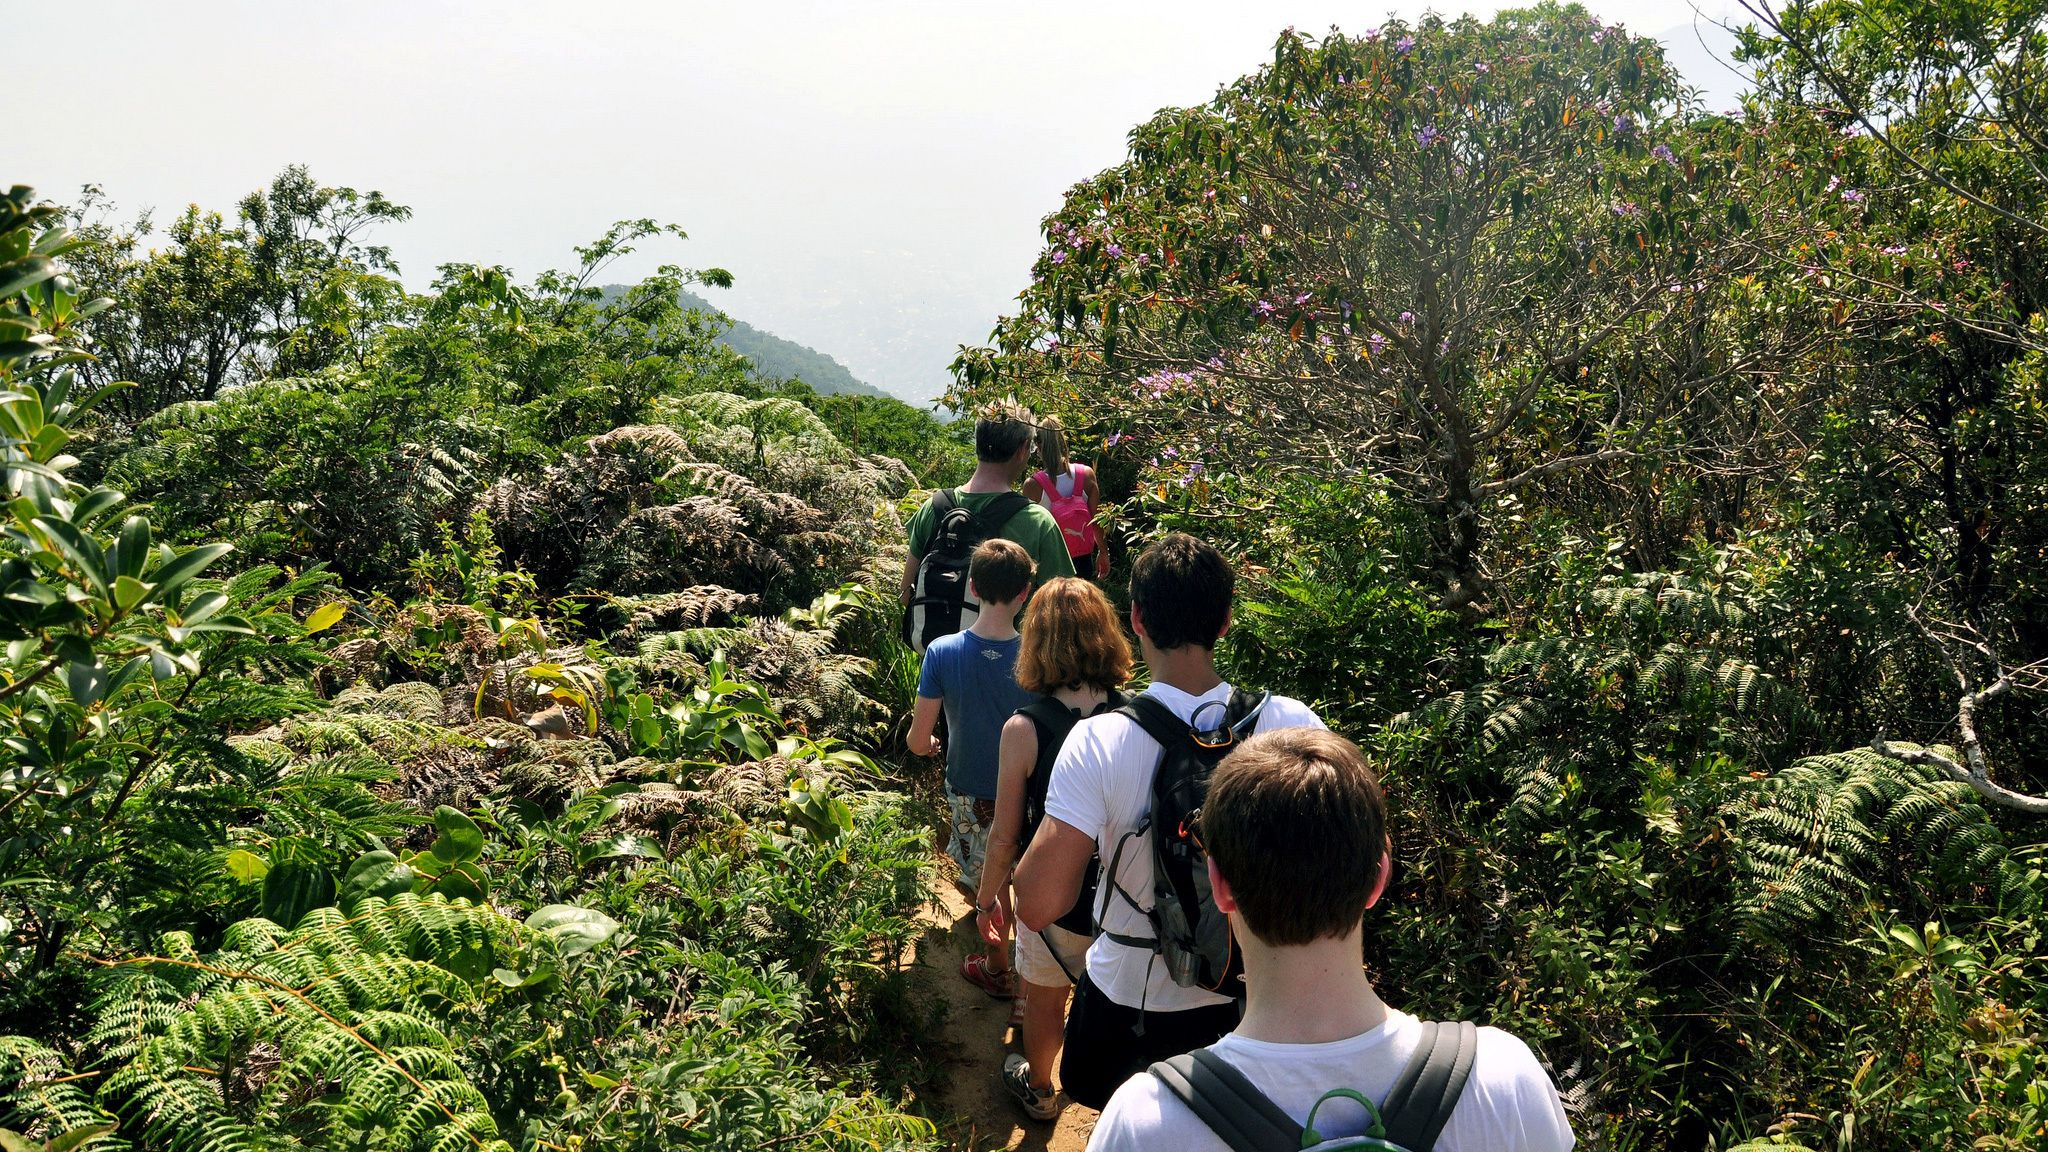 Hiking group on a trail at Tijuca National Park in Rio de Janeiro